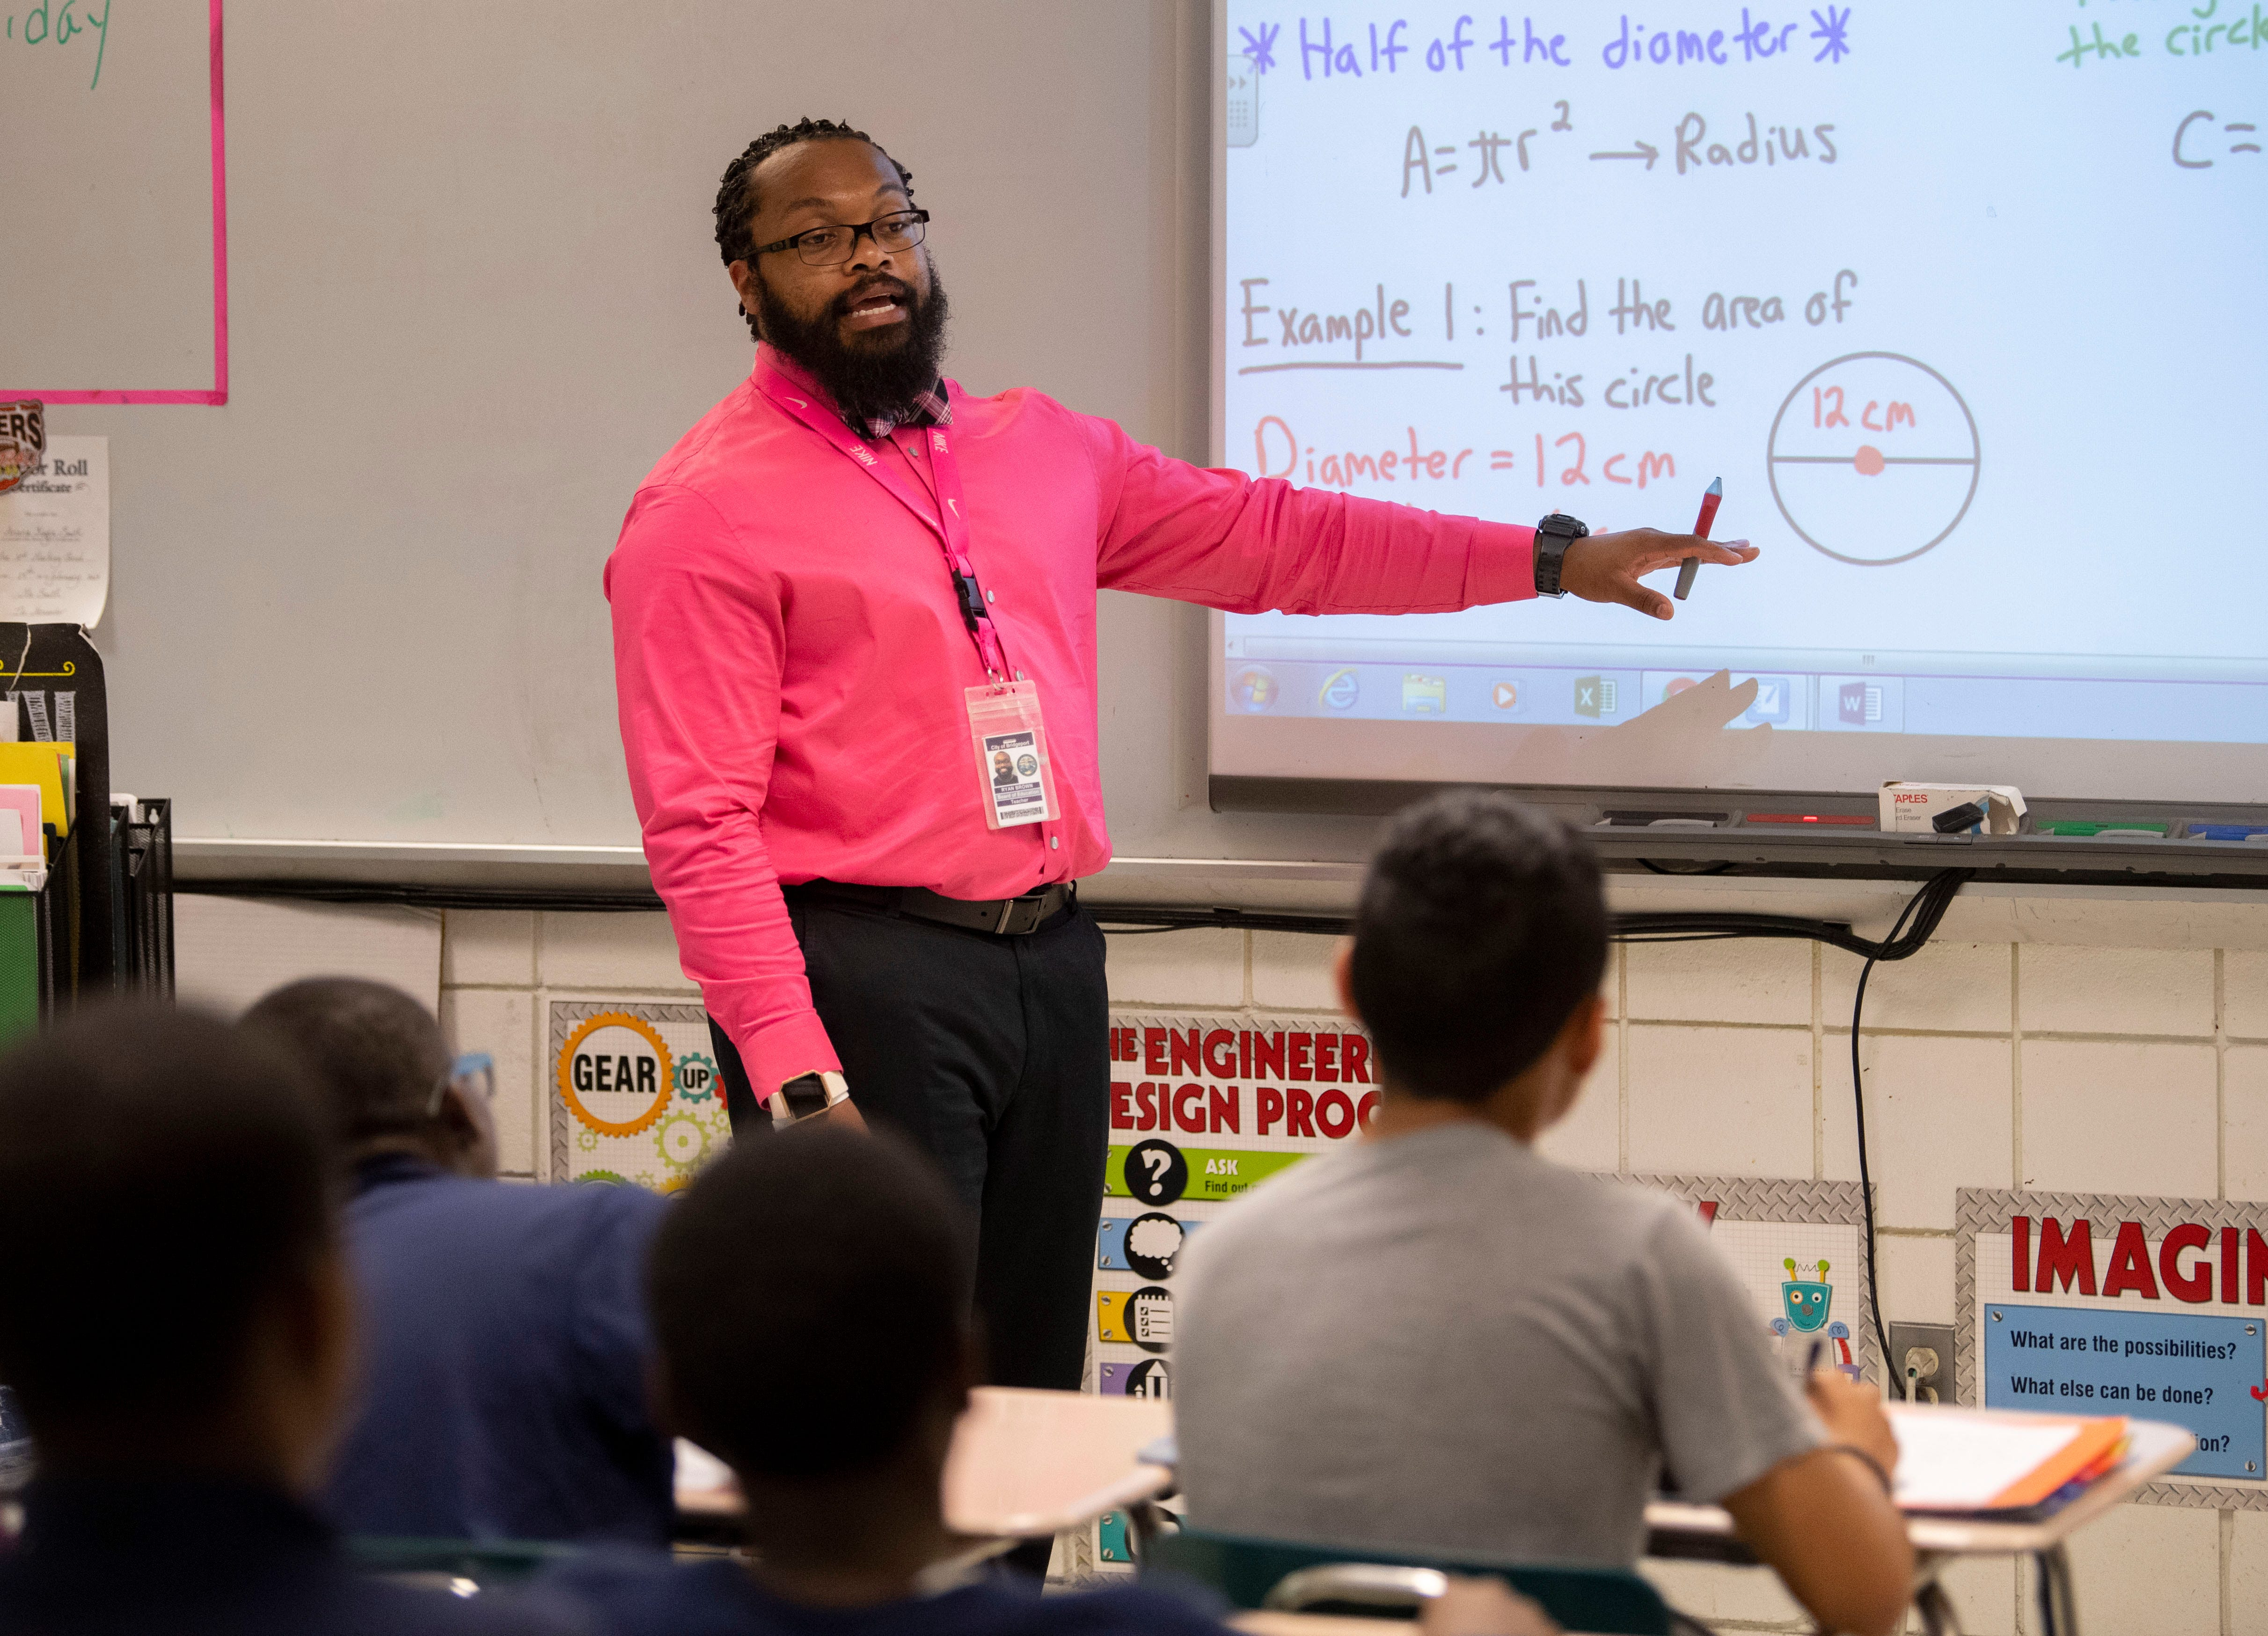 For many teaching jobs, teachers pay can't cover rent